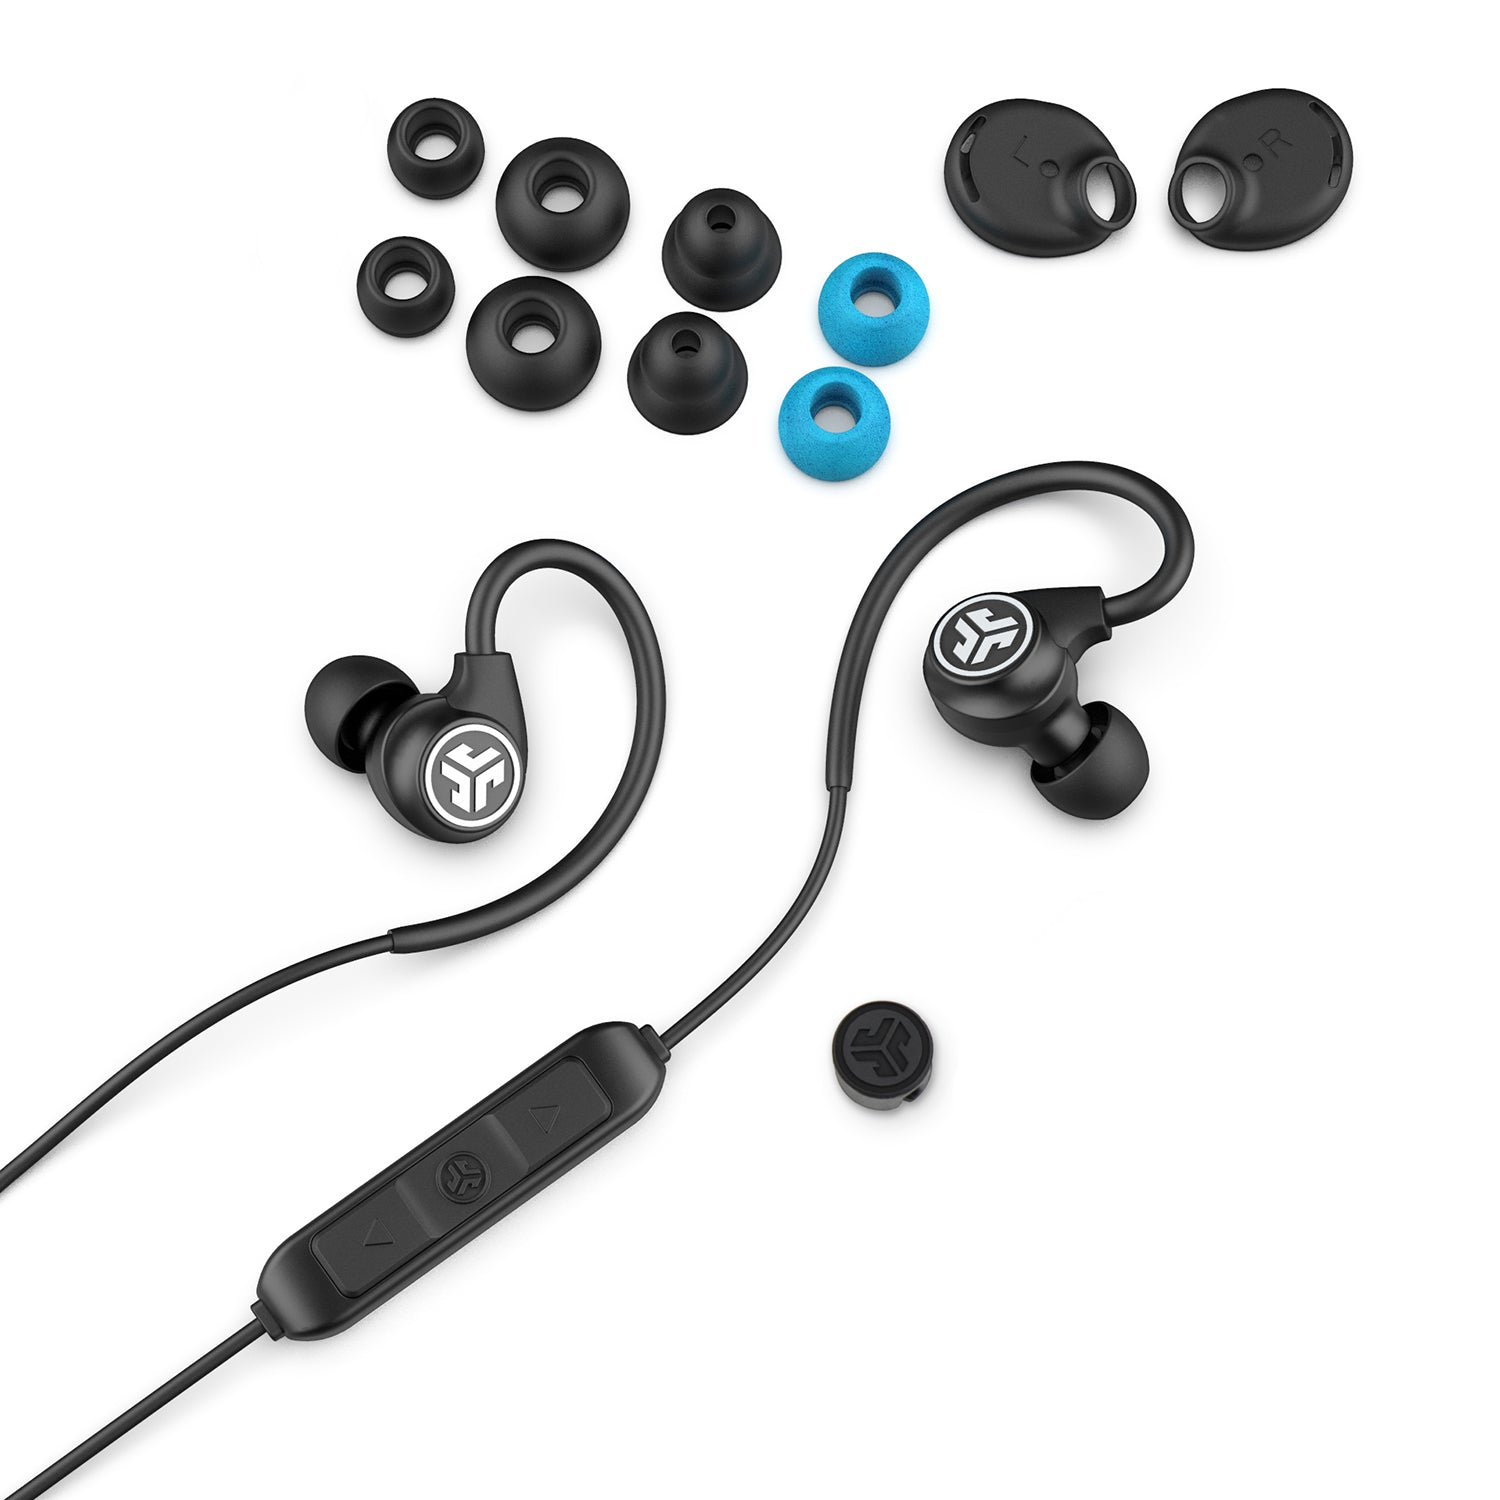 Fit Sport 3 Wireless Fitness Earbuds with accessories